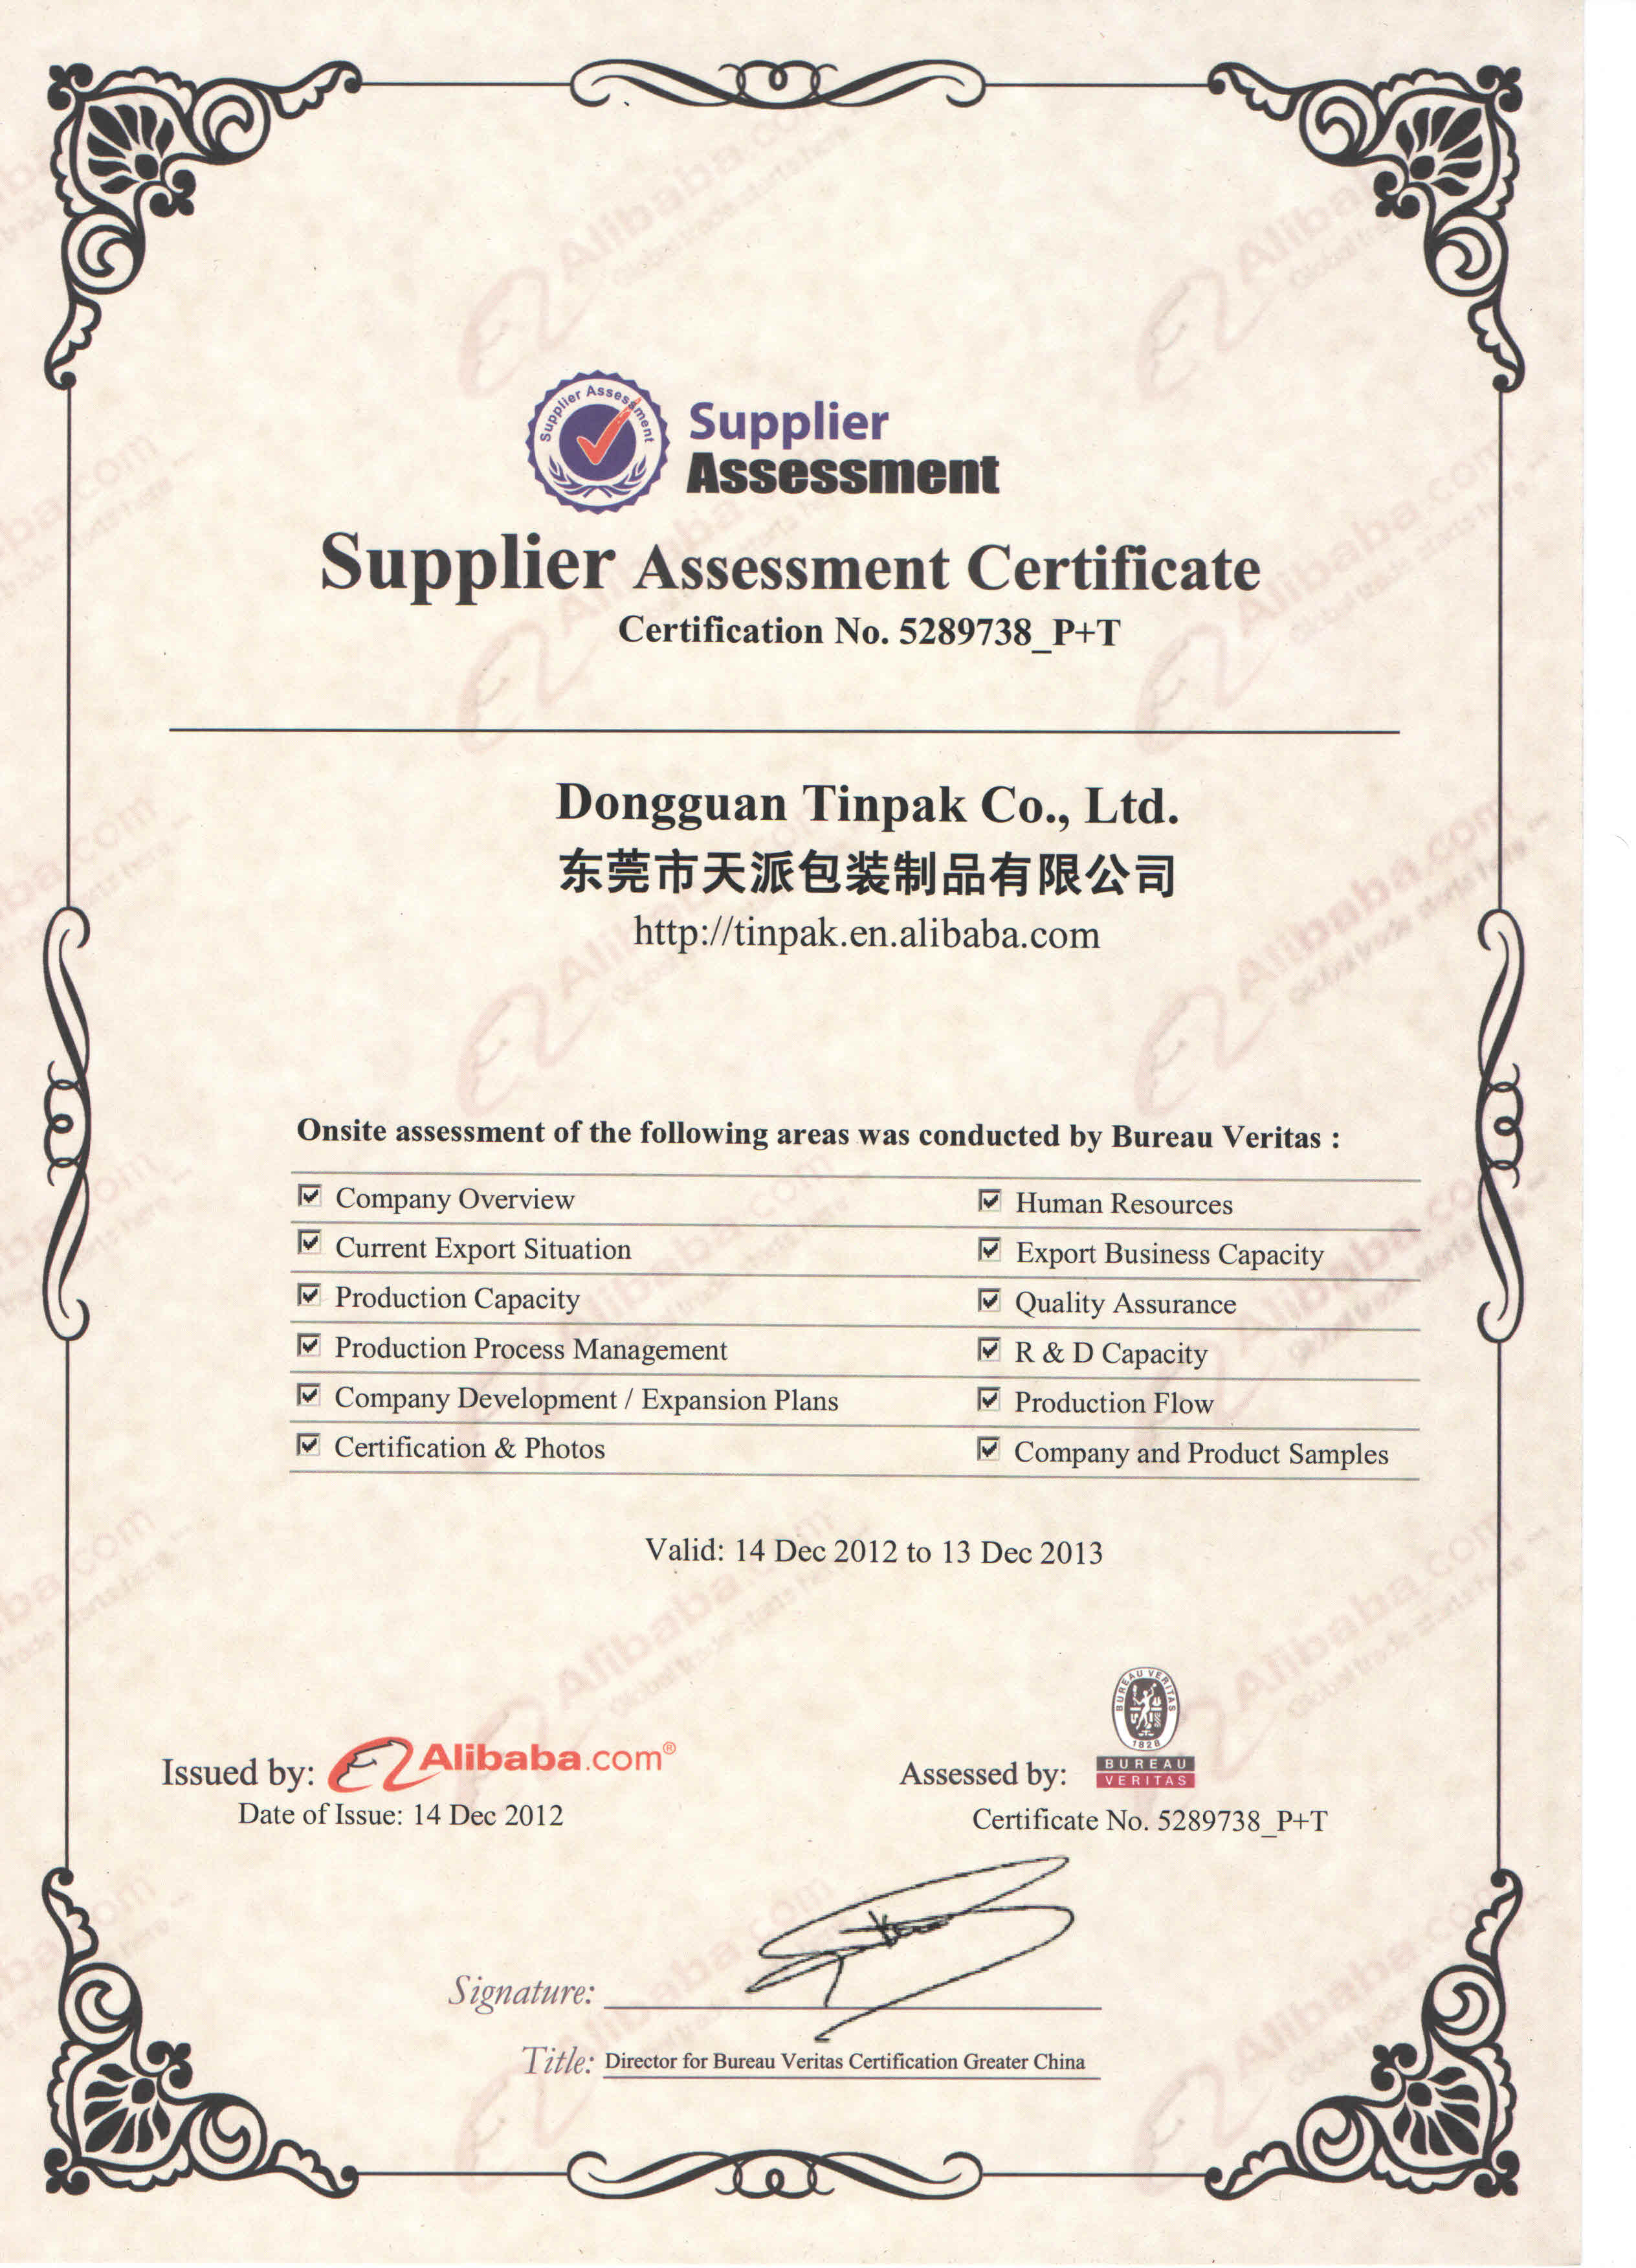 BV issued Supplier Assessment